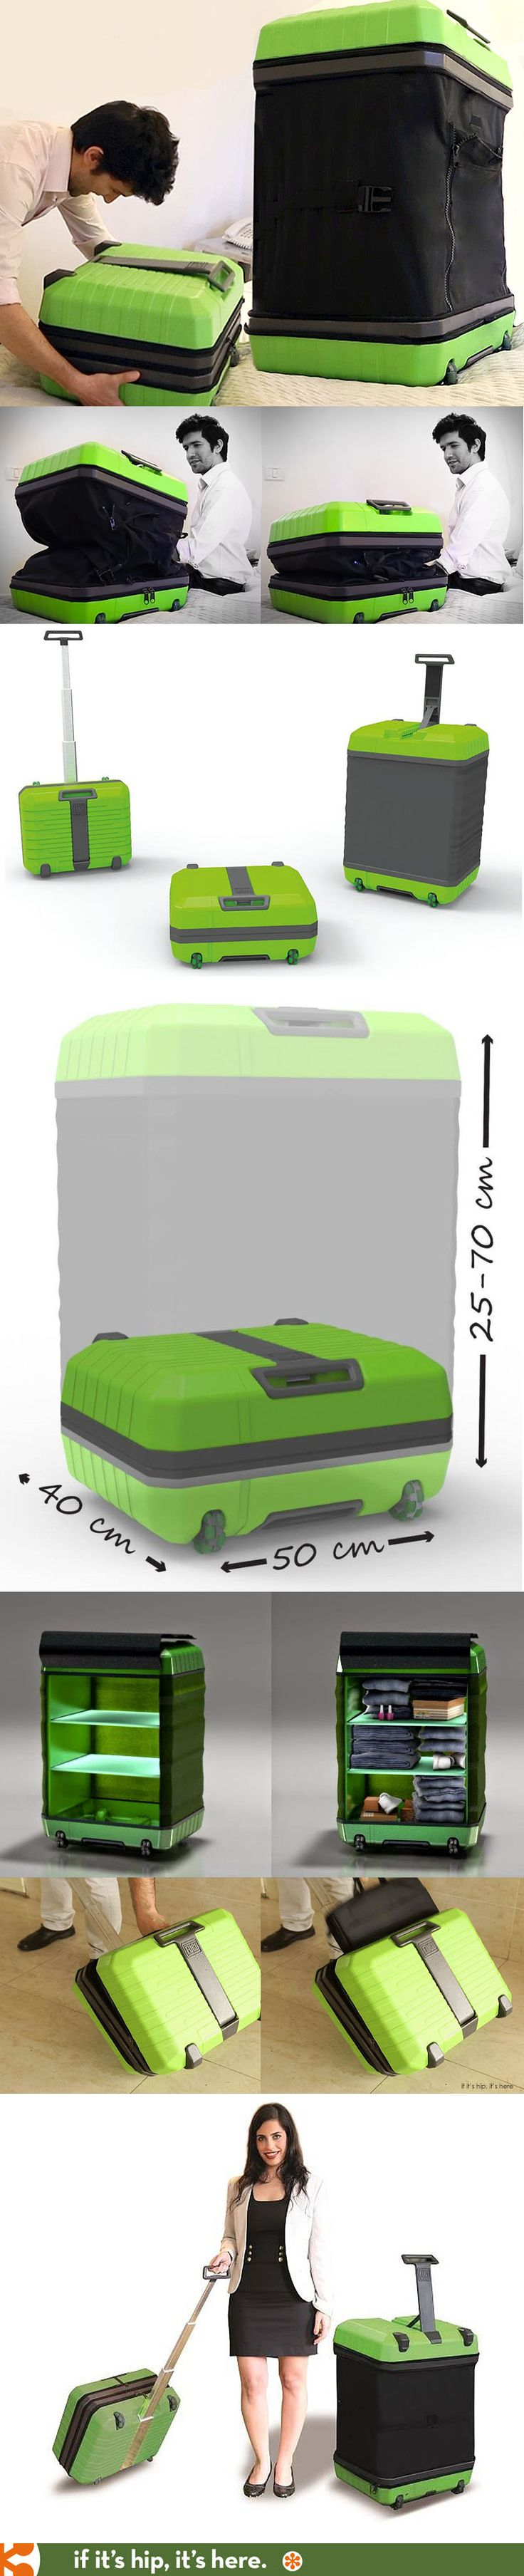 FUGU - revolutionary expanding luggage that goes from a carry-on into a check-in piece of baggage in seconds. | http://www.ifitshipitshere.com/fugu-expandable-luggage/